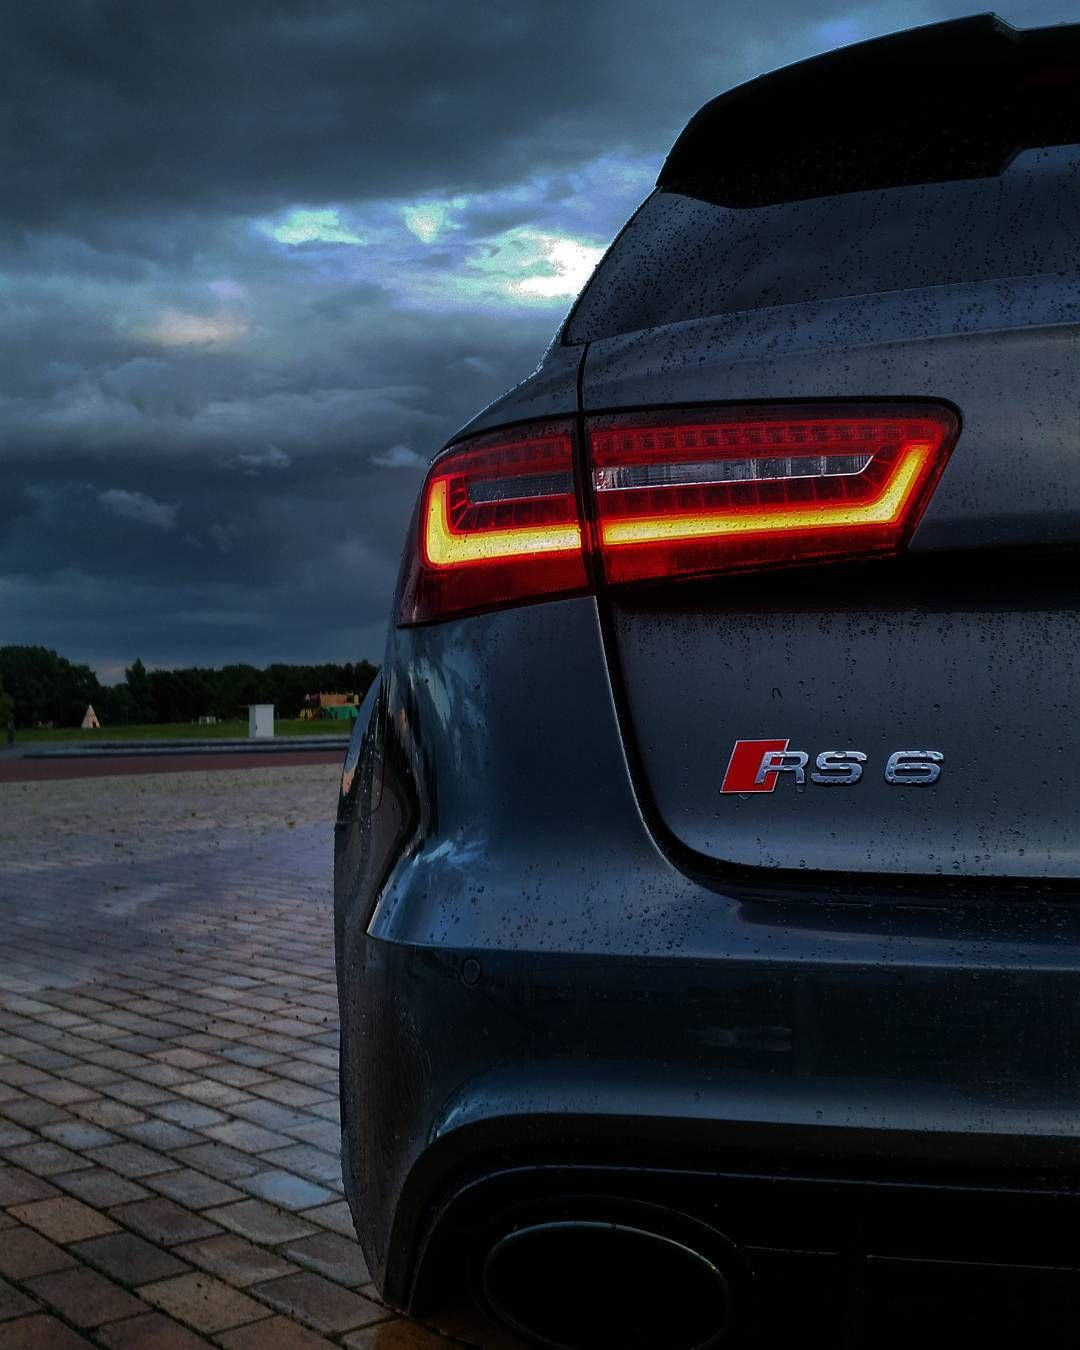 RS6 iPhone Background iPhone backgrounds Audi wagon Audi rs3 1080x1350